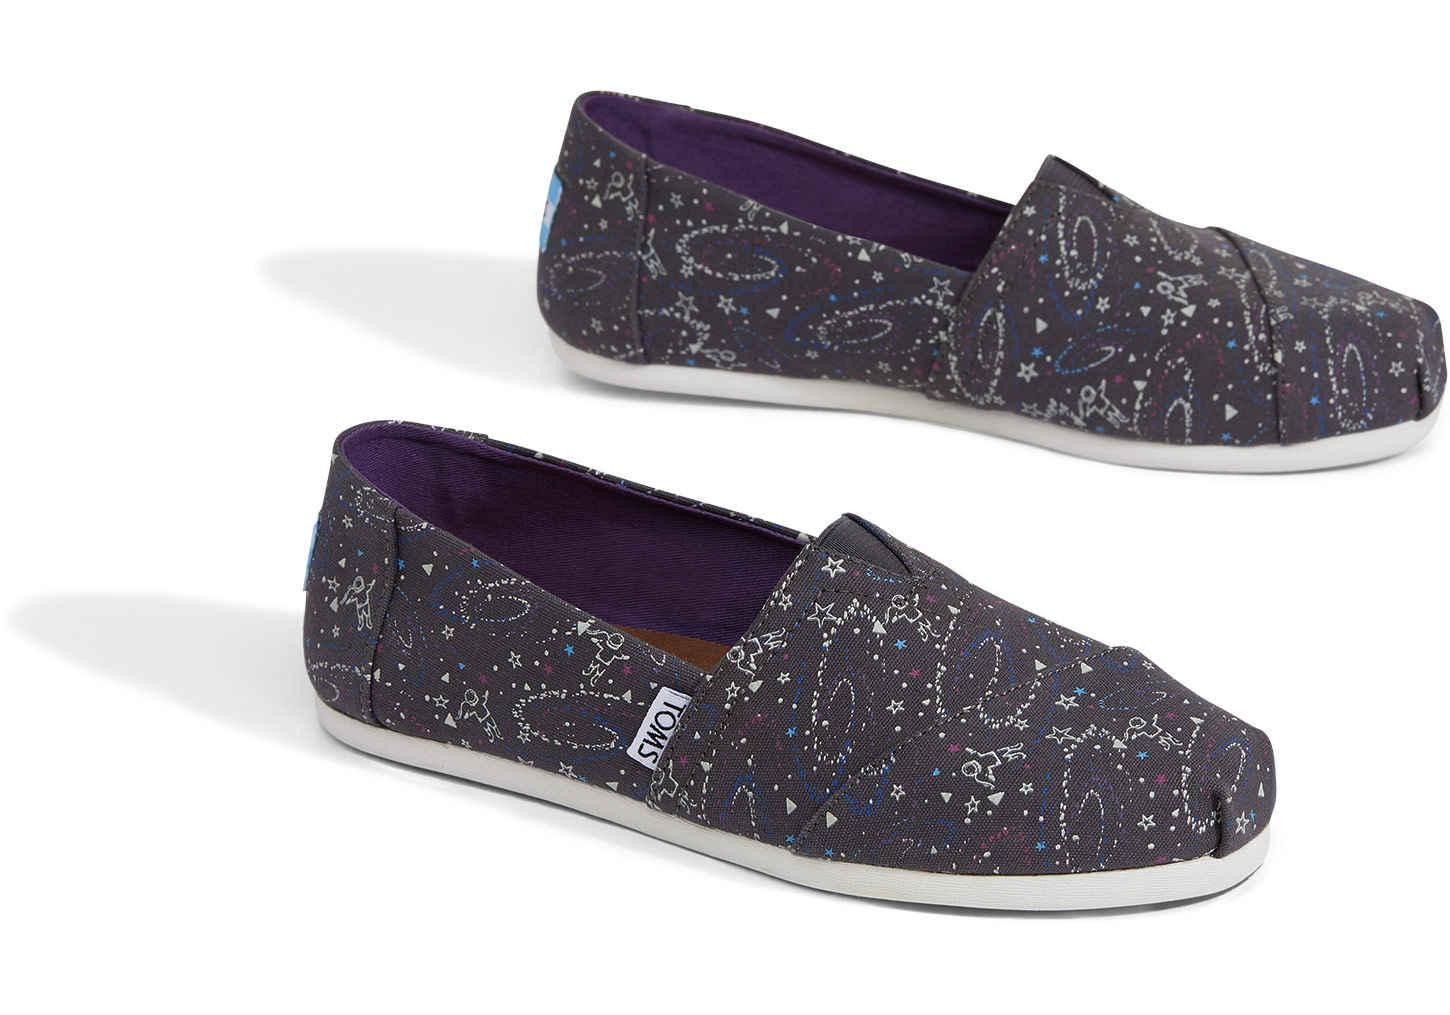 e28ae30869e TOMS Outerspace Glow In The Dark Women s Classics - Lyst